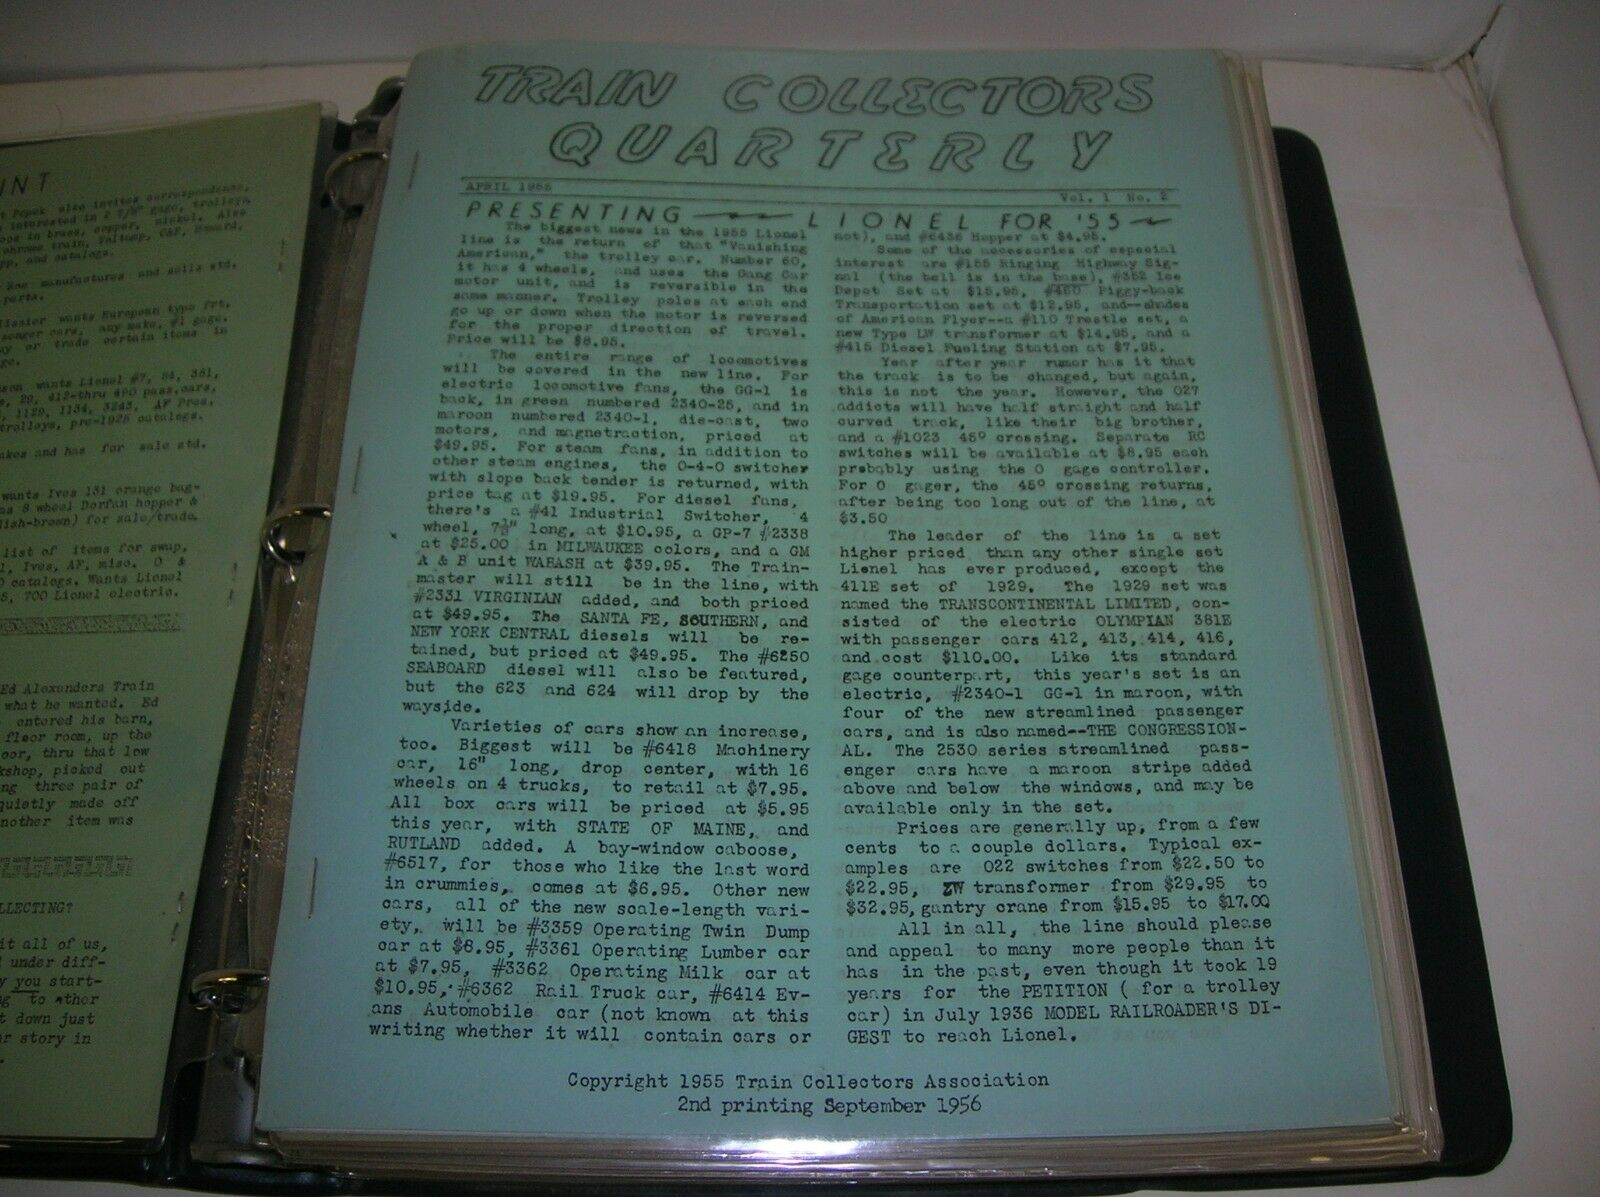 TRAIN COLLECTORS QUARTERLY NEWS LETTER APRIL 1955 VOL. 1 NO. 2 - MAKE OFFERS